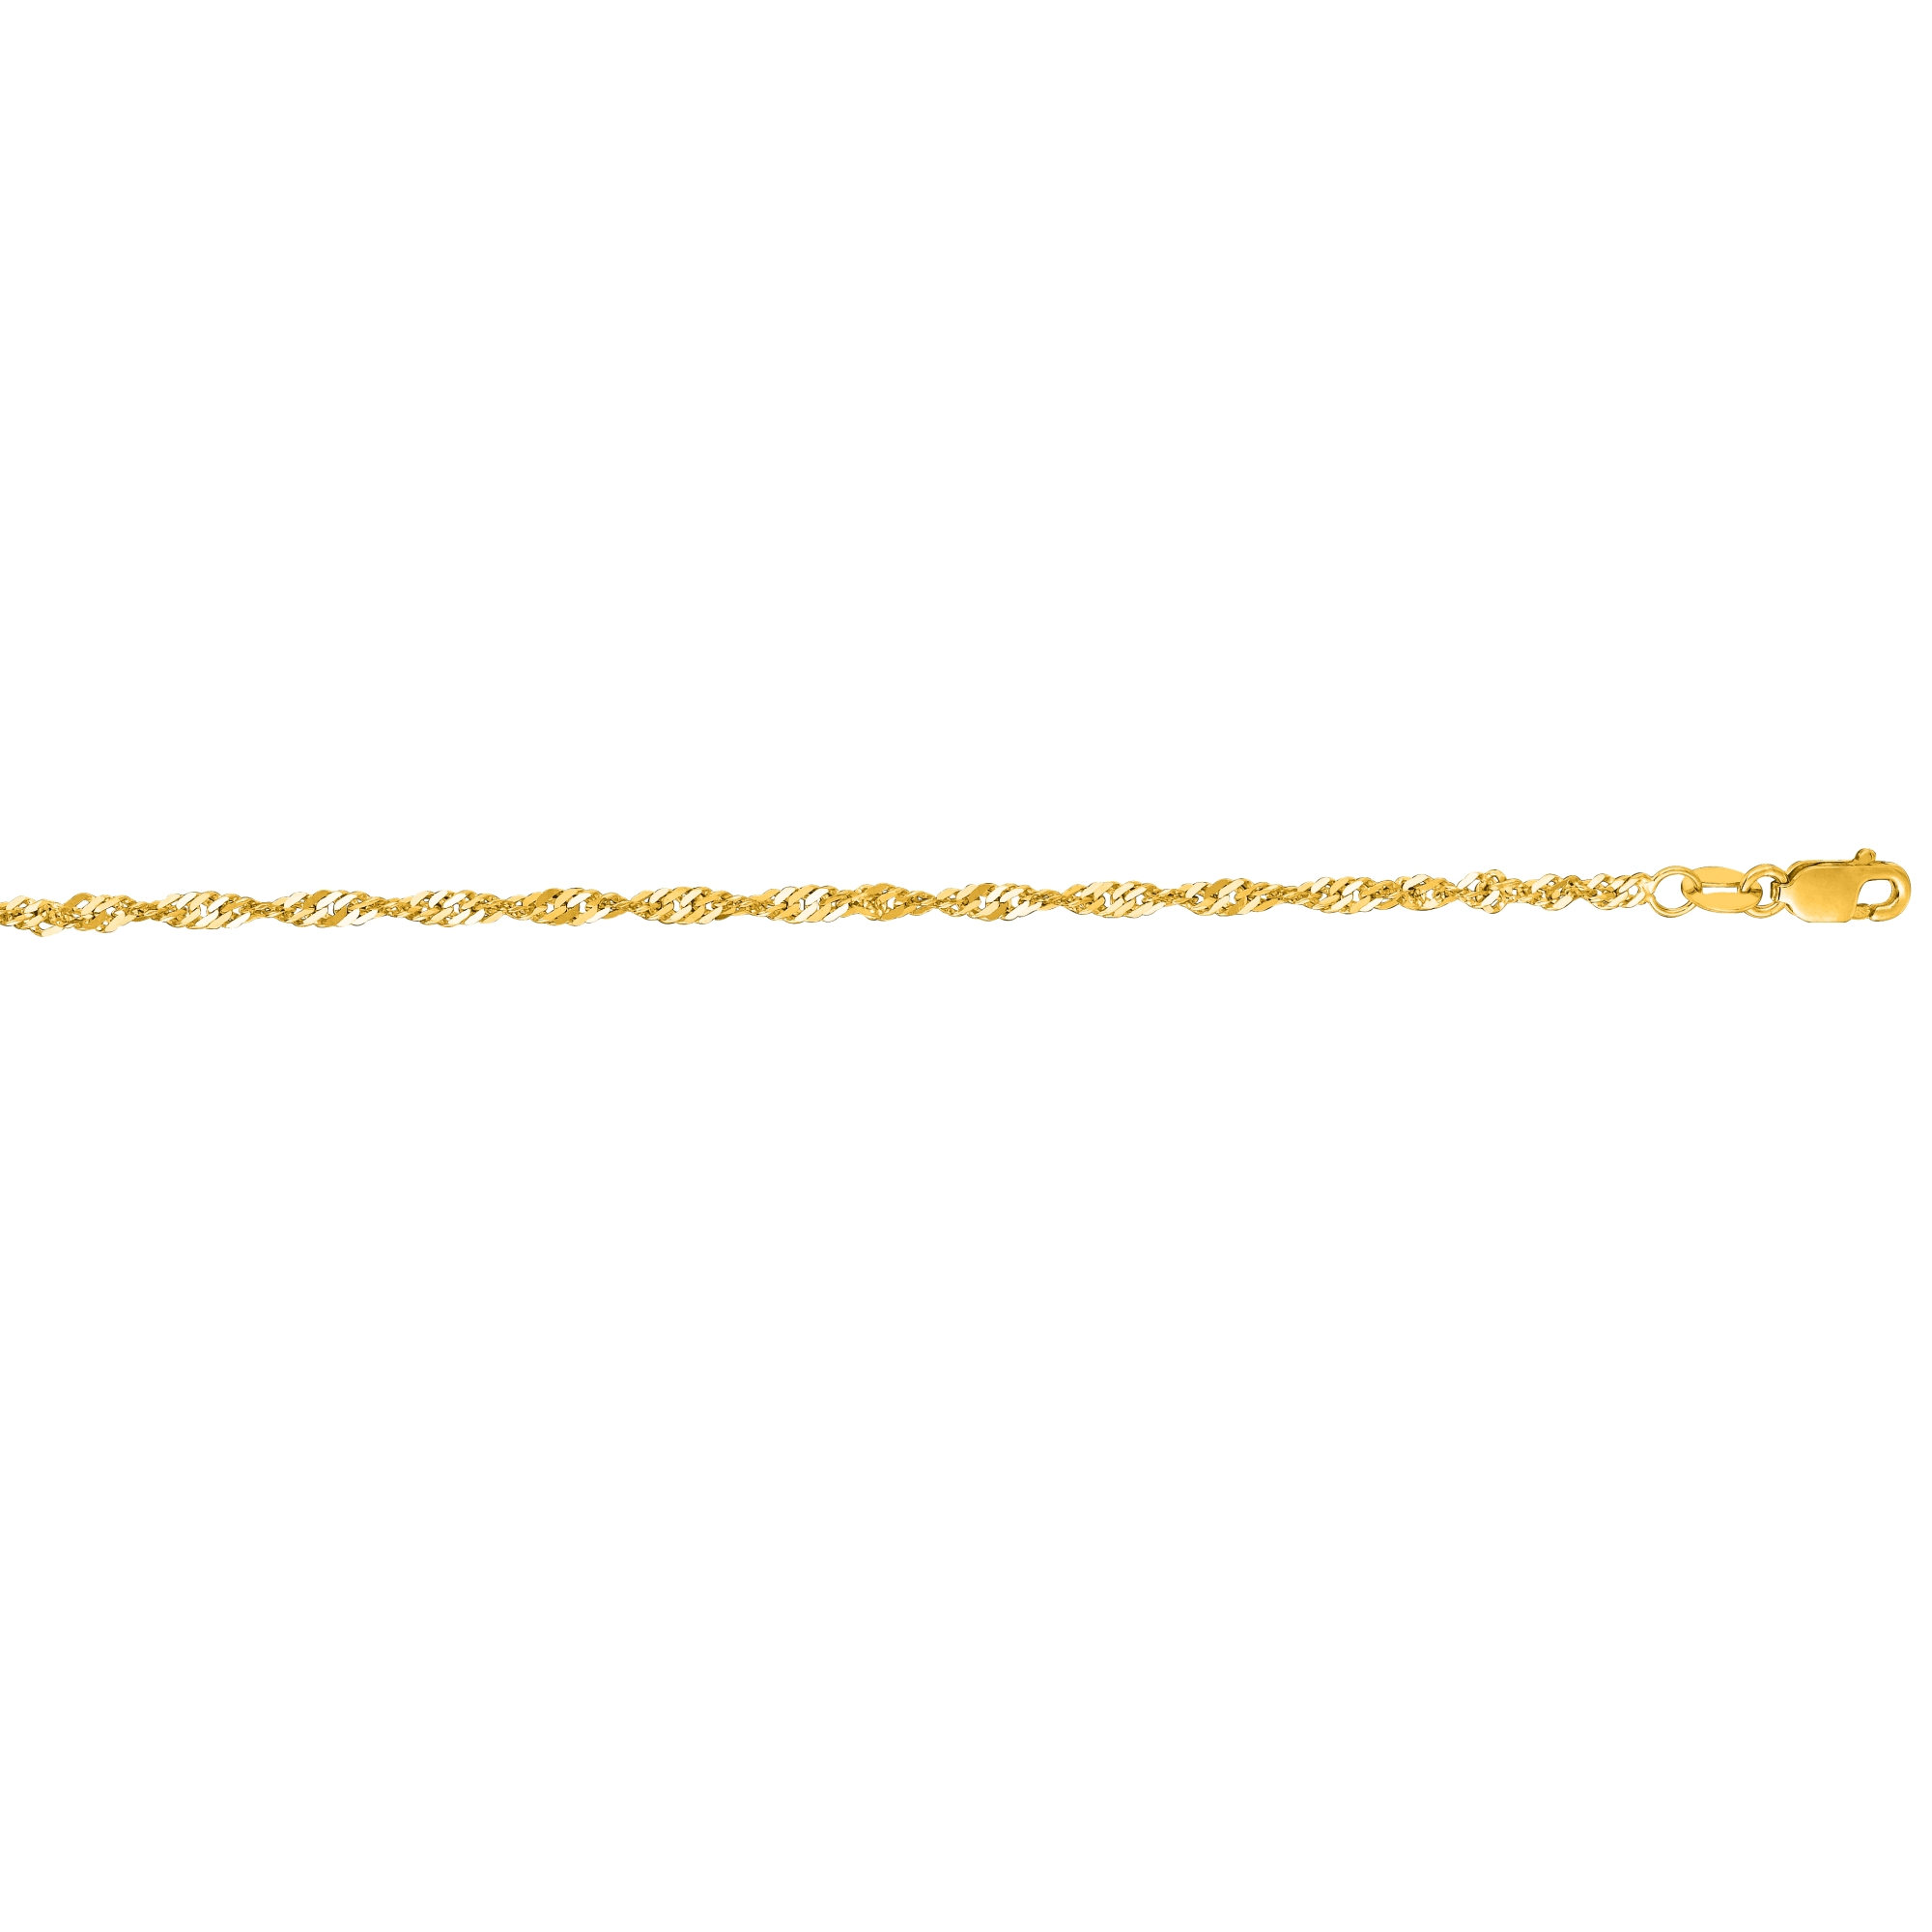 LUXURMAN Solid 14k Gold Singapore Chain For Men & Women 1.7mm Wide